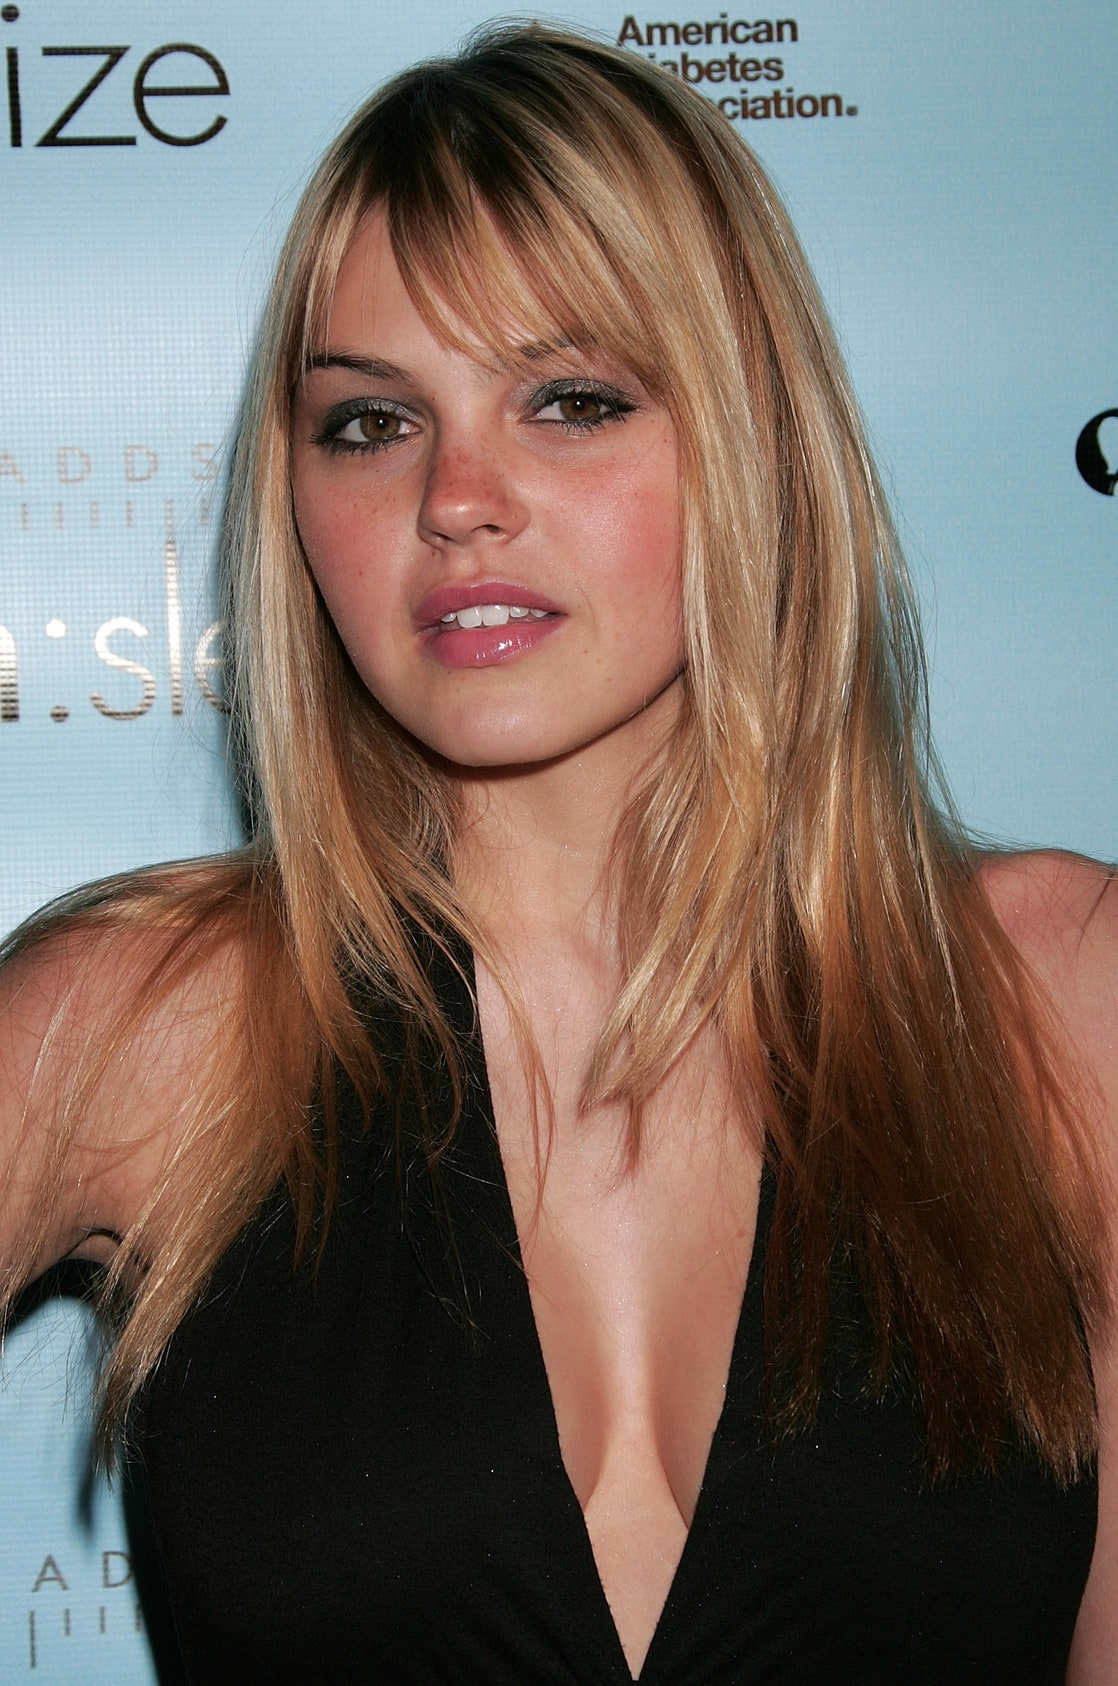 picture aimee teegarden - photo #30